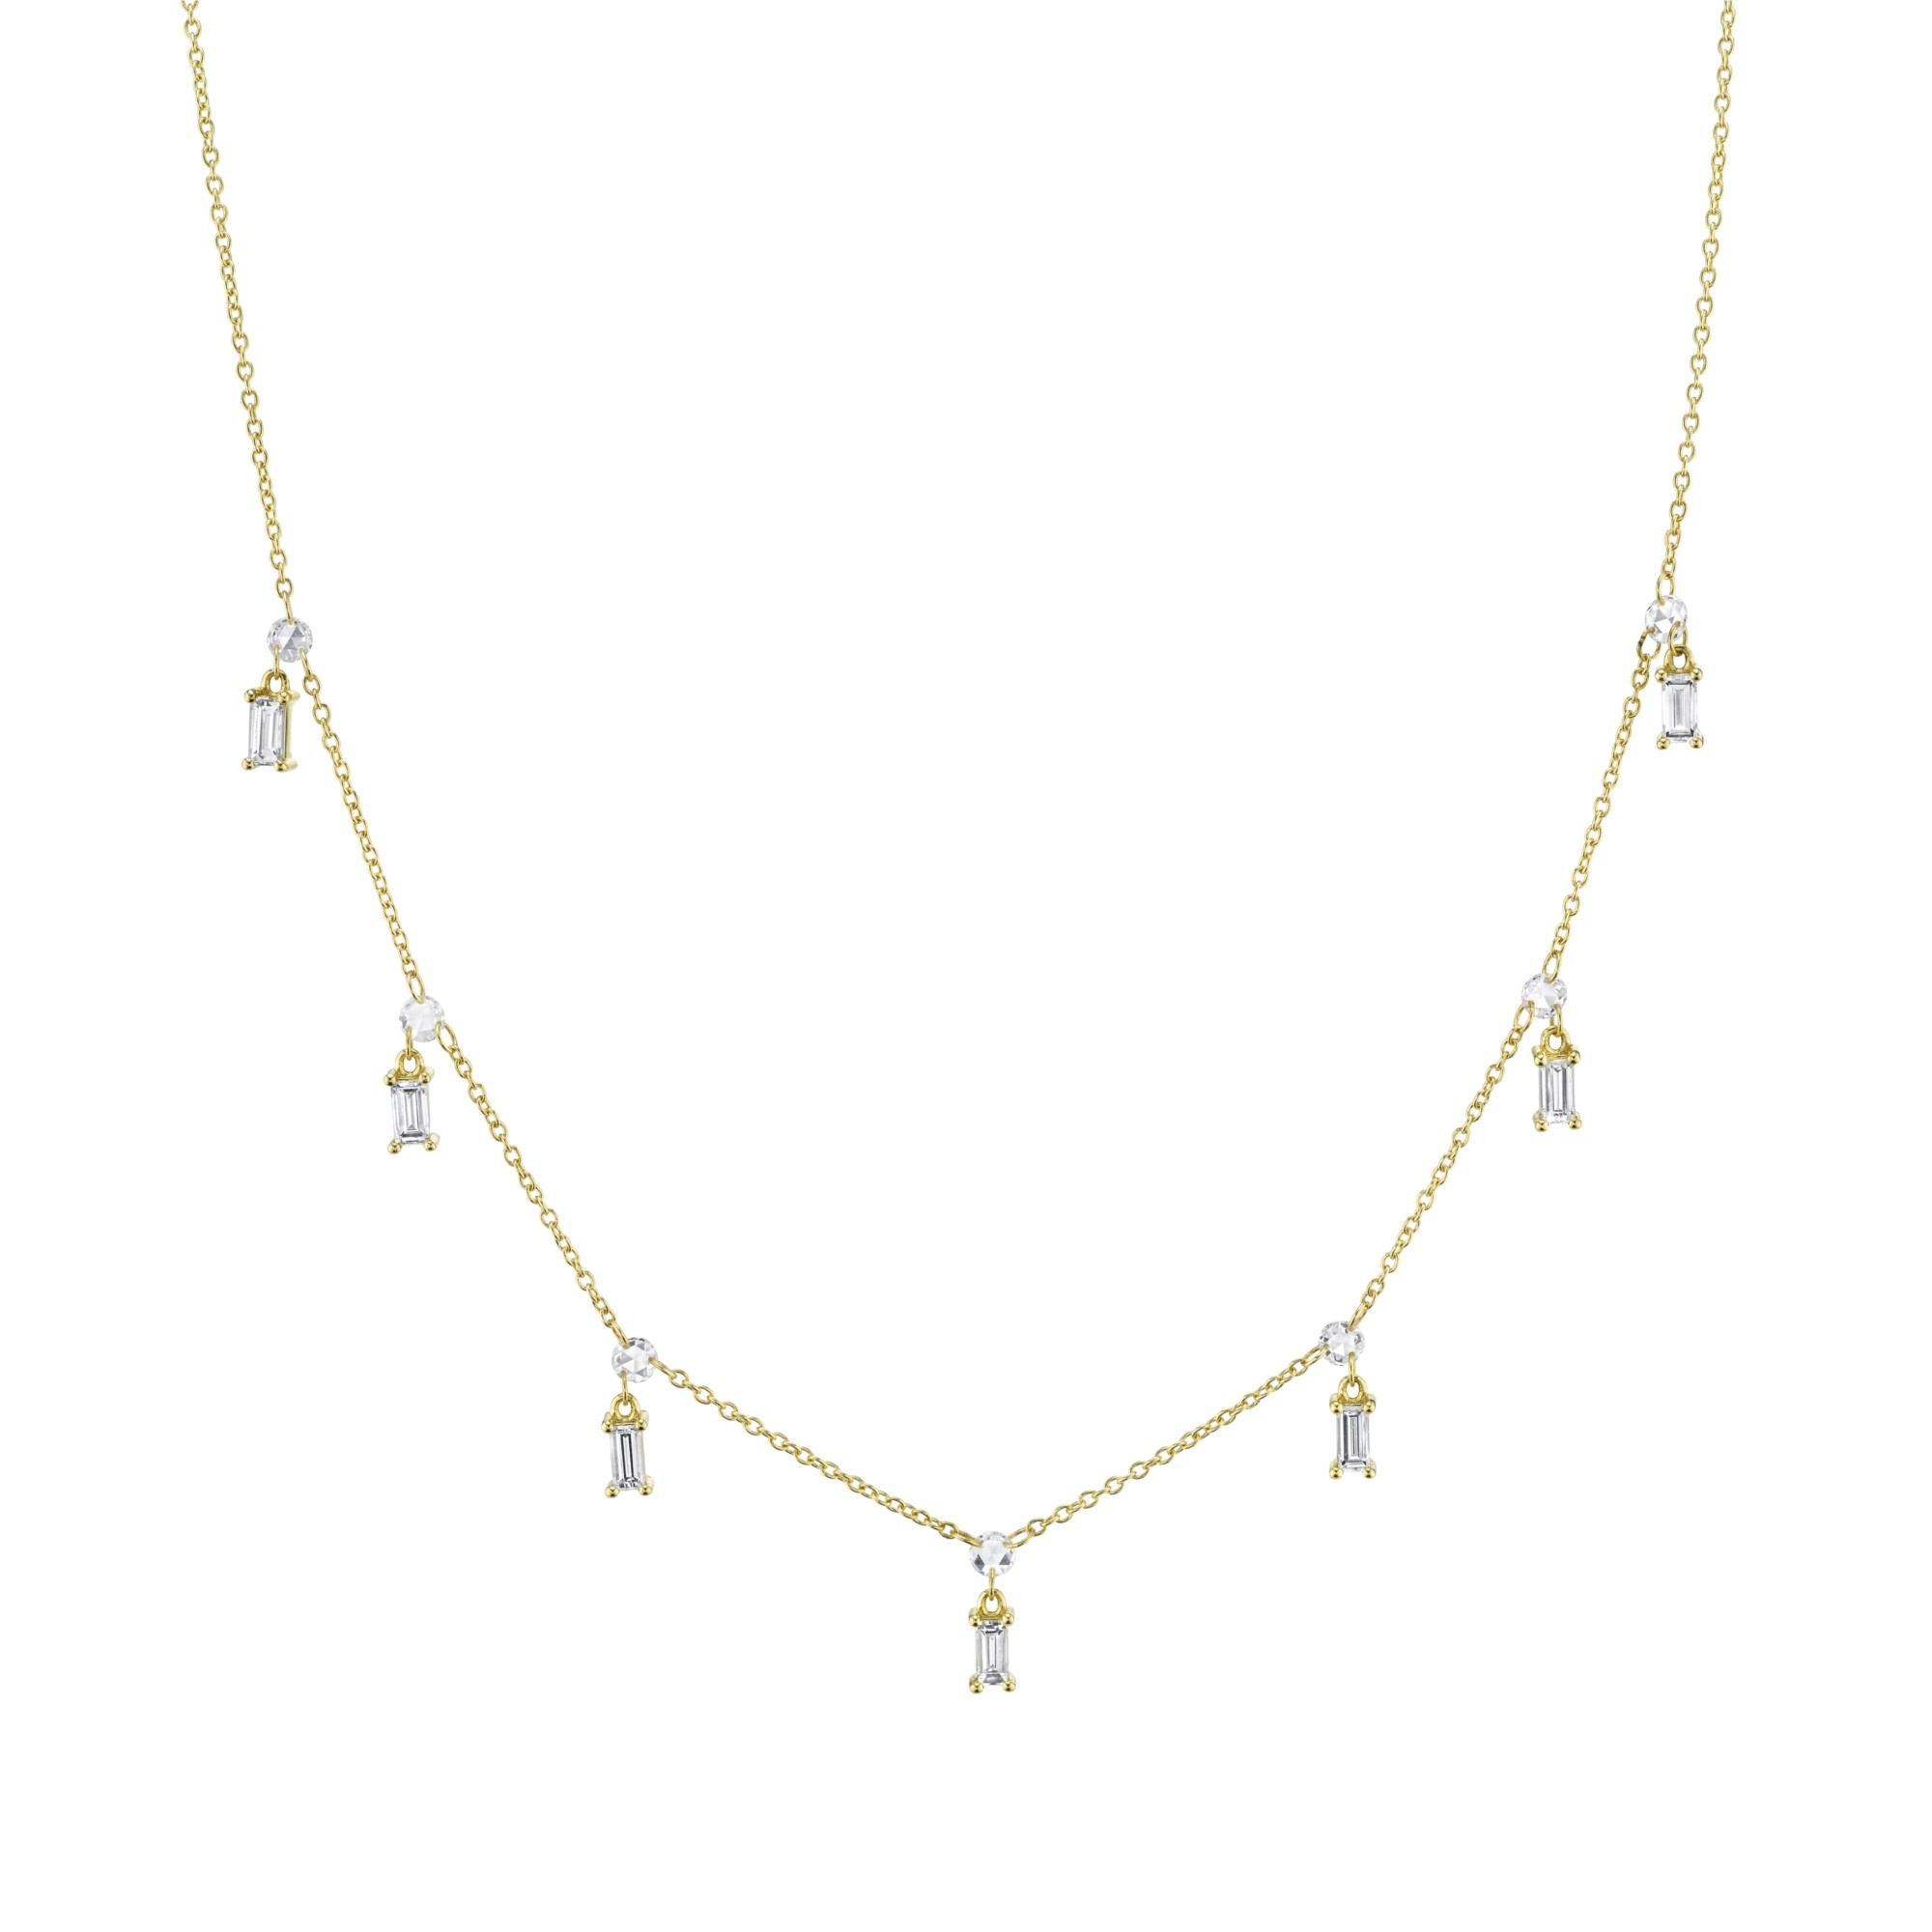 Sloane Street 18K Yellow Gold 1.002cts Enh:N  Diamonds Gold Necklace with Stones CH013F-WDCB-Y-18-16